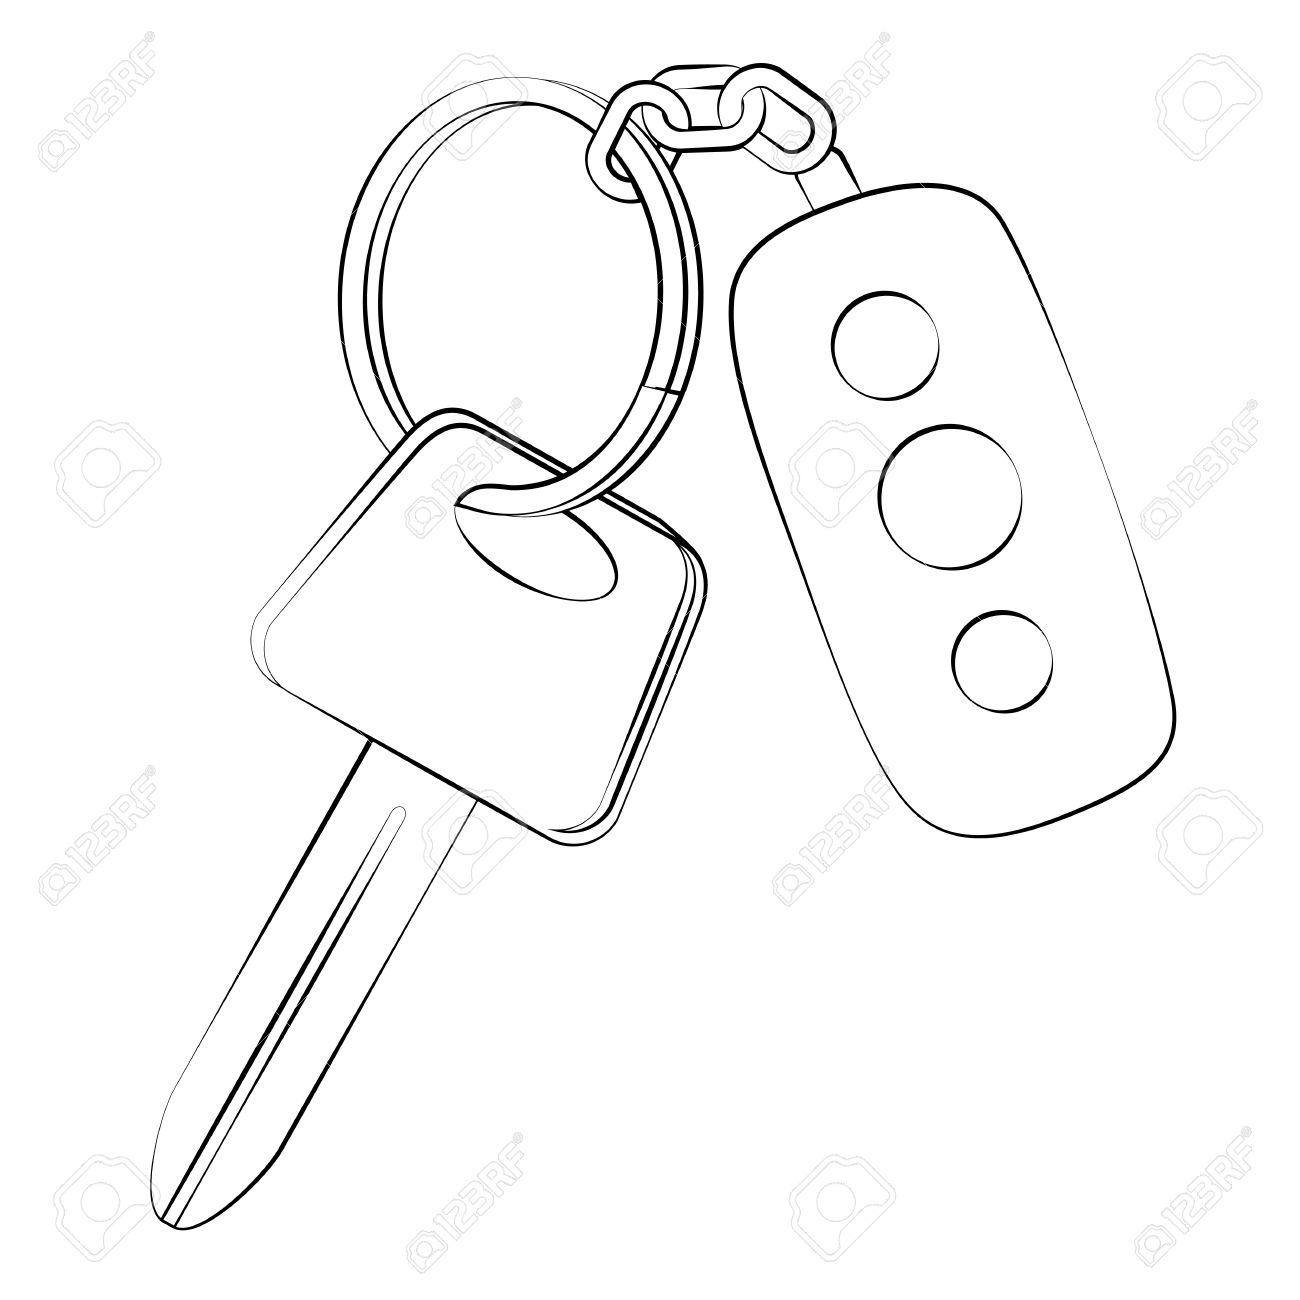 1300x1300 Black Outline Vector Car Key On White Background. Royalty Free